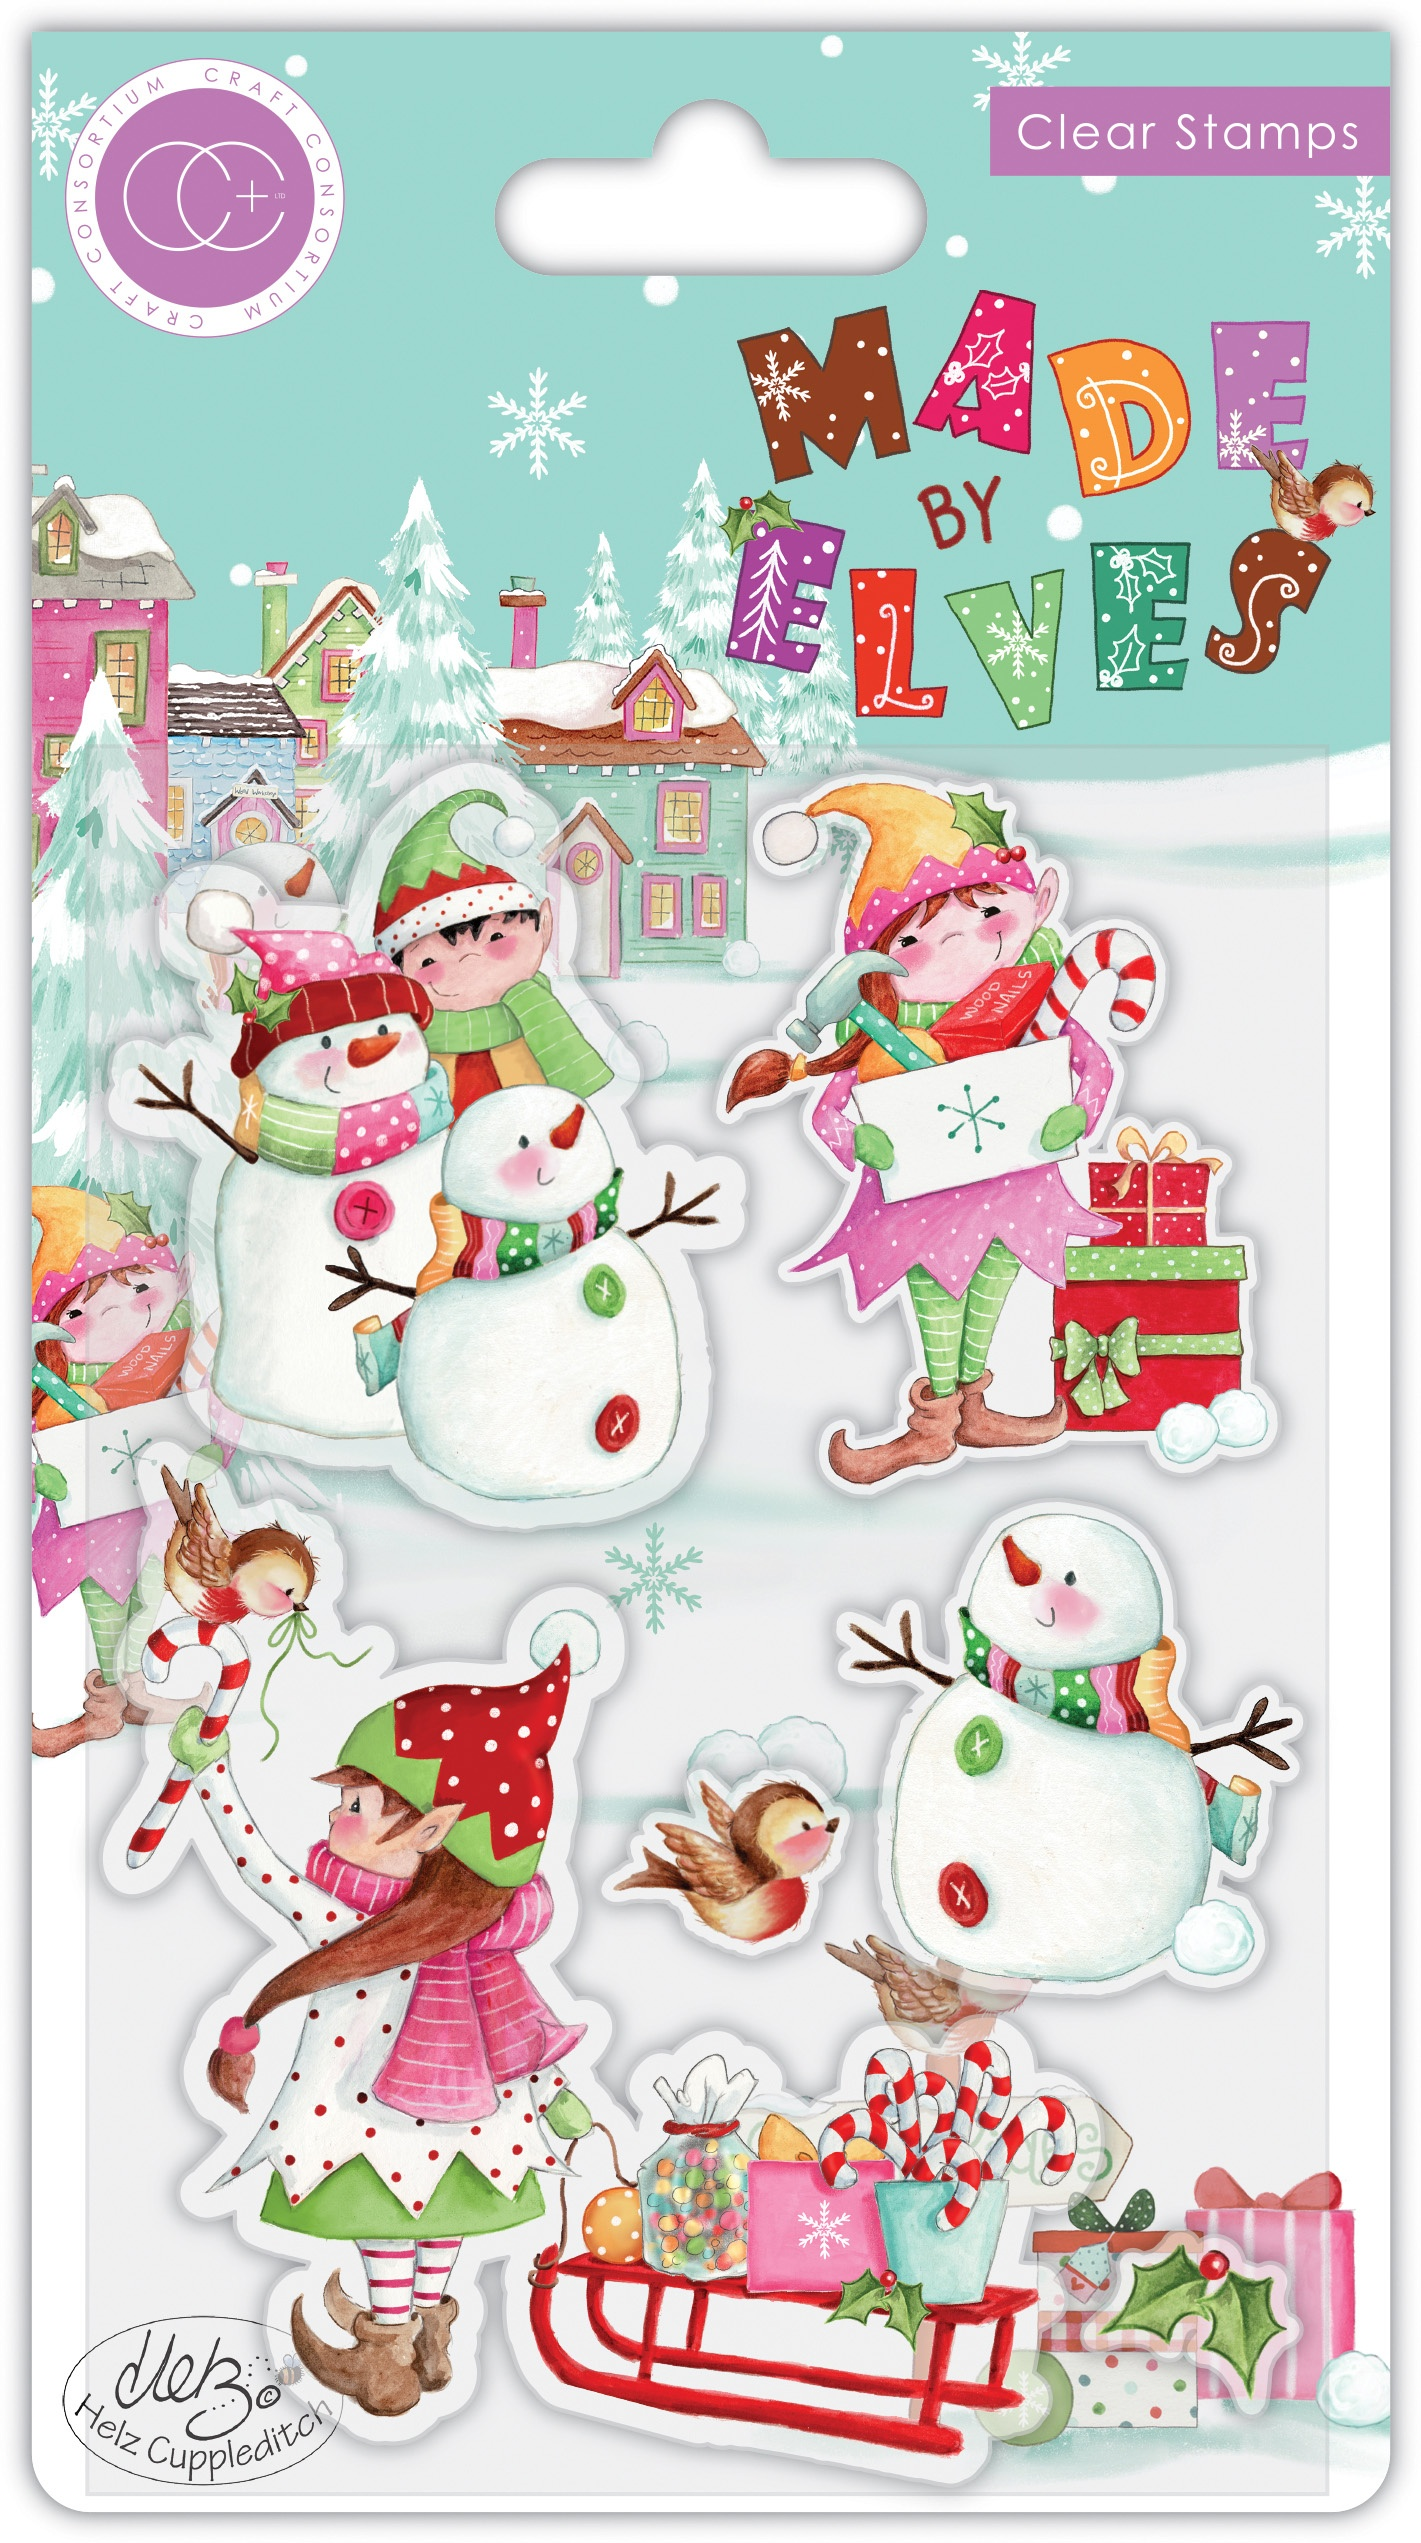 Made By Elves Candy Stamp Set